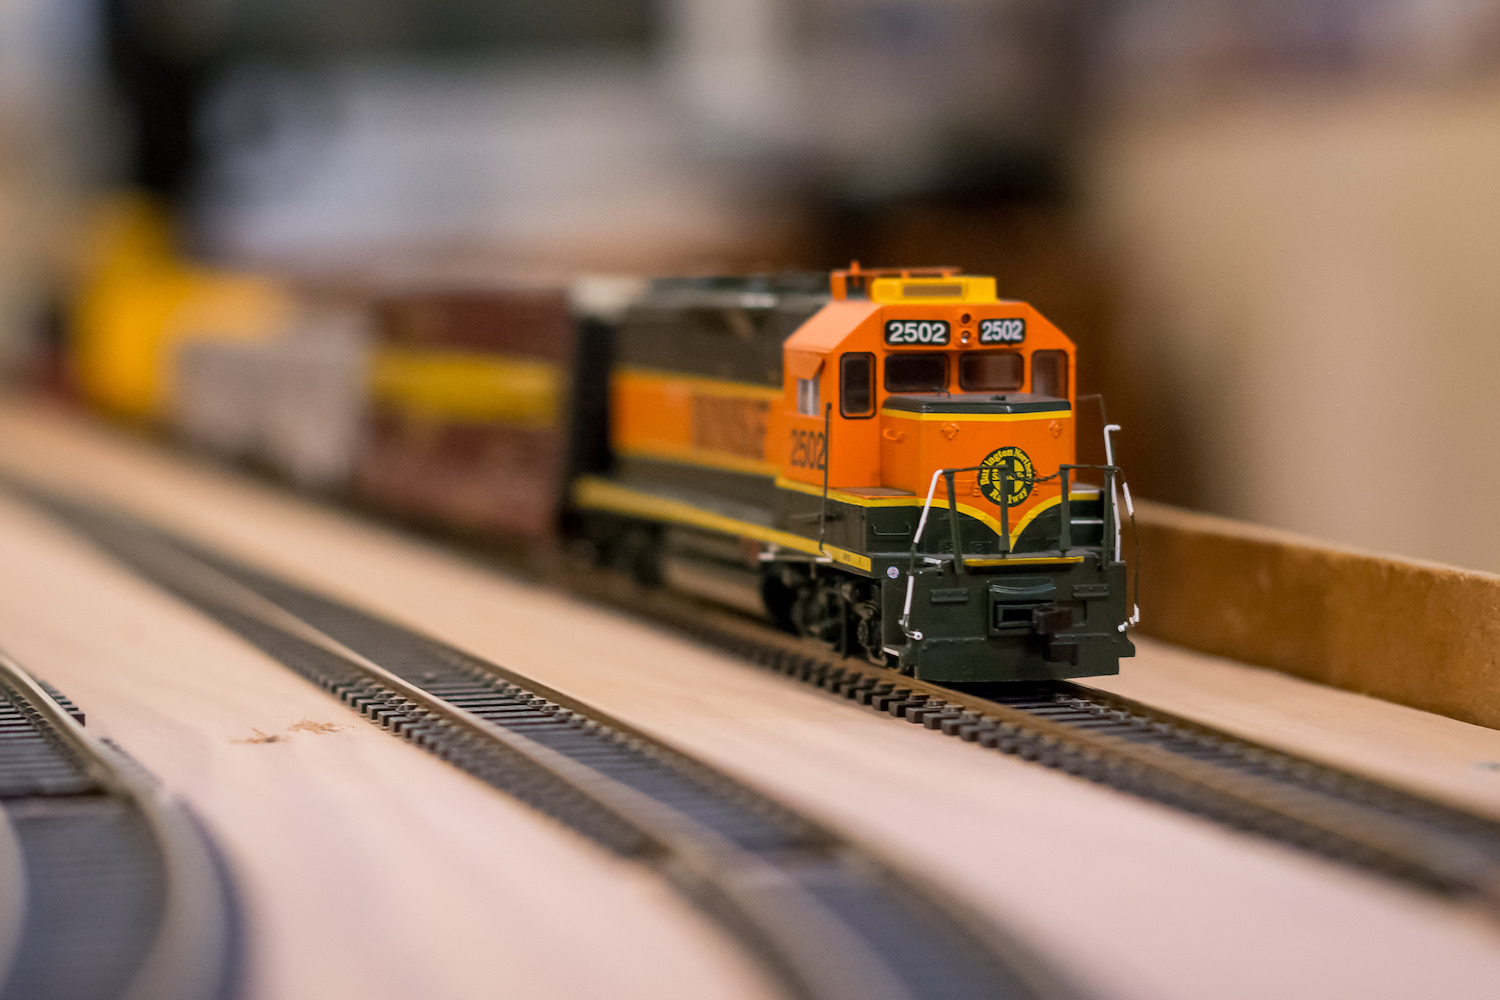 Image: Model train in a dim basement, shot at 50mm, f/2.8, 1/60 second, ISO 3200.